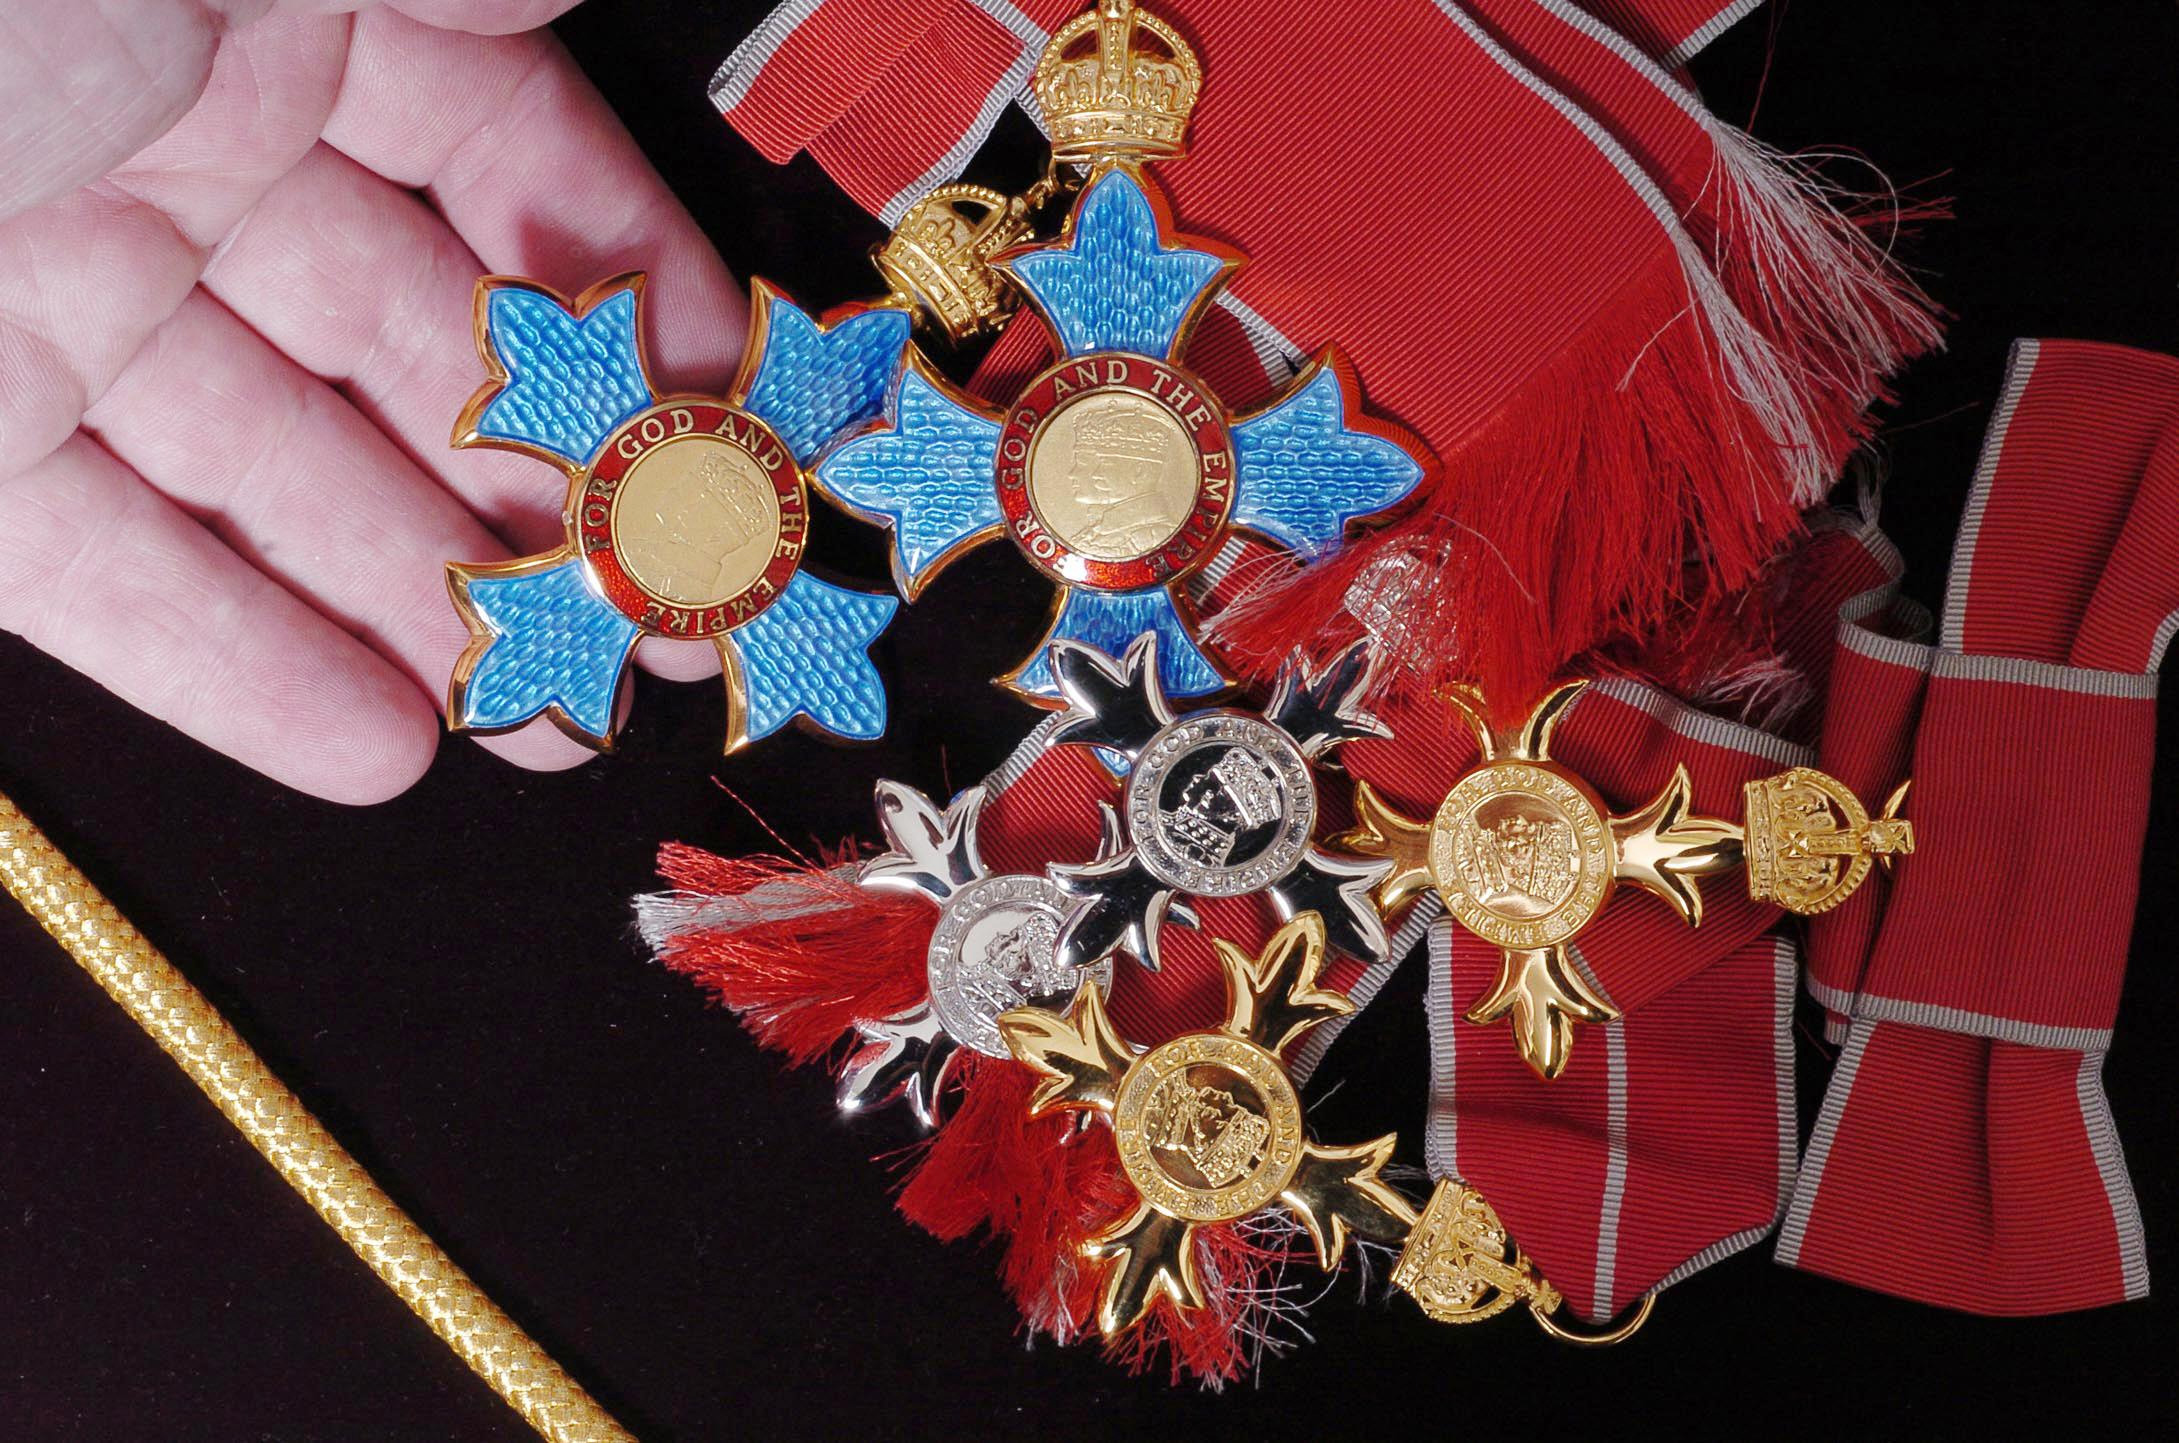 OBE, CBE and MBE medals